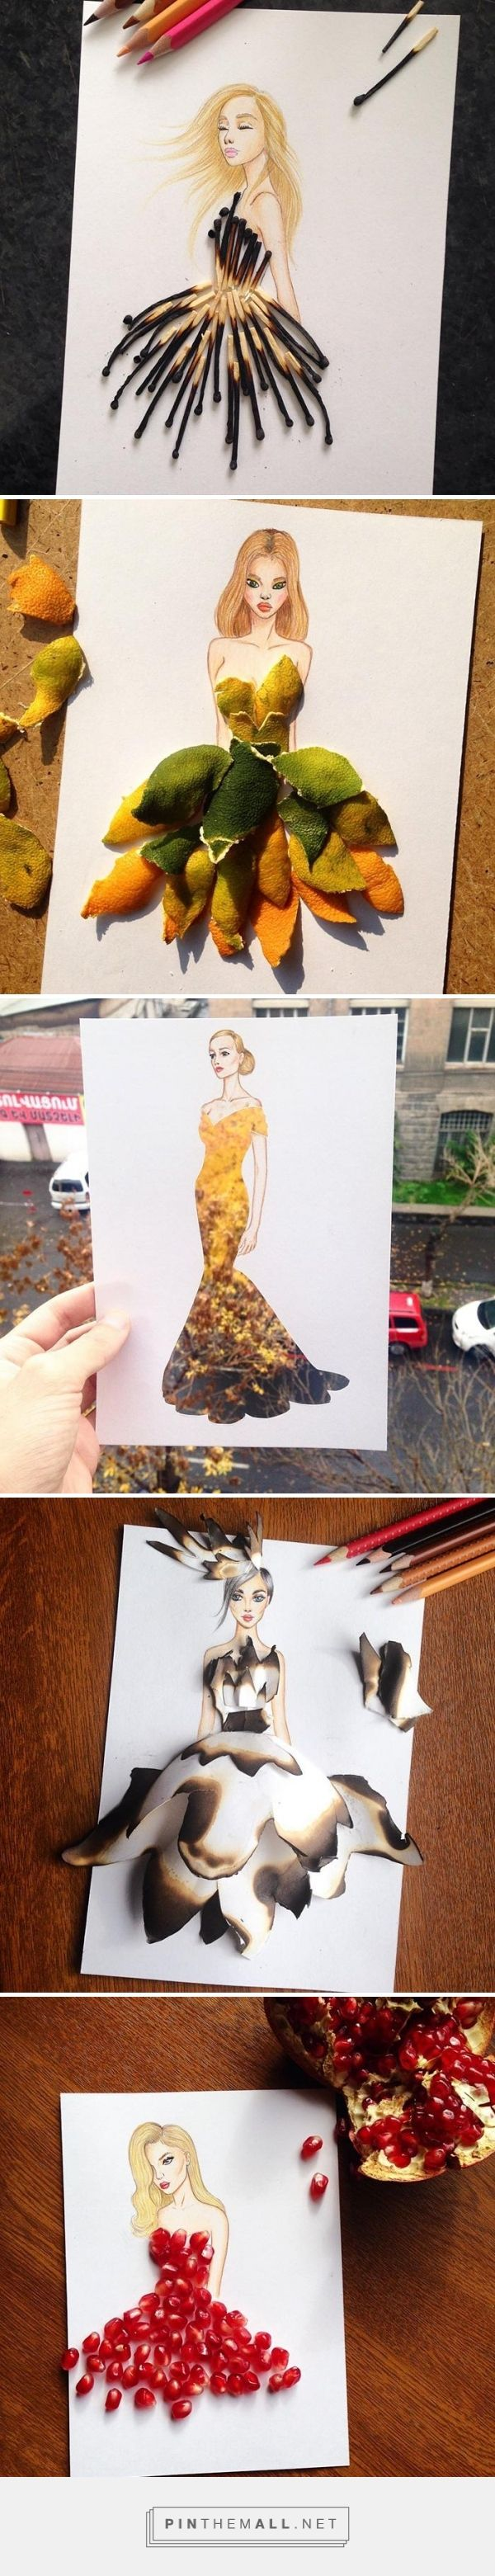 Armenian fashion illustrator Edgar Artis uses stylized paper cut outs and everyday objects to create beautiful dresses. His creative fashion sketches include such items as rose petals, various plants and food, even buildings. (Via BoredPanda)